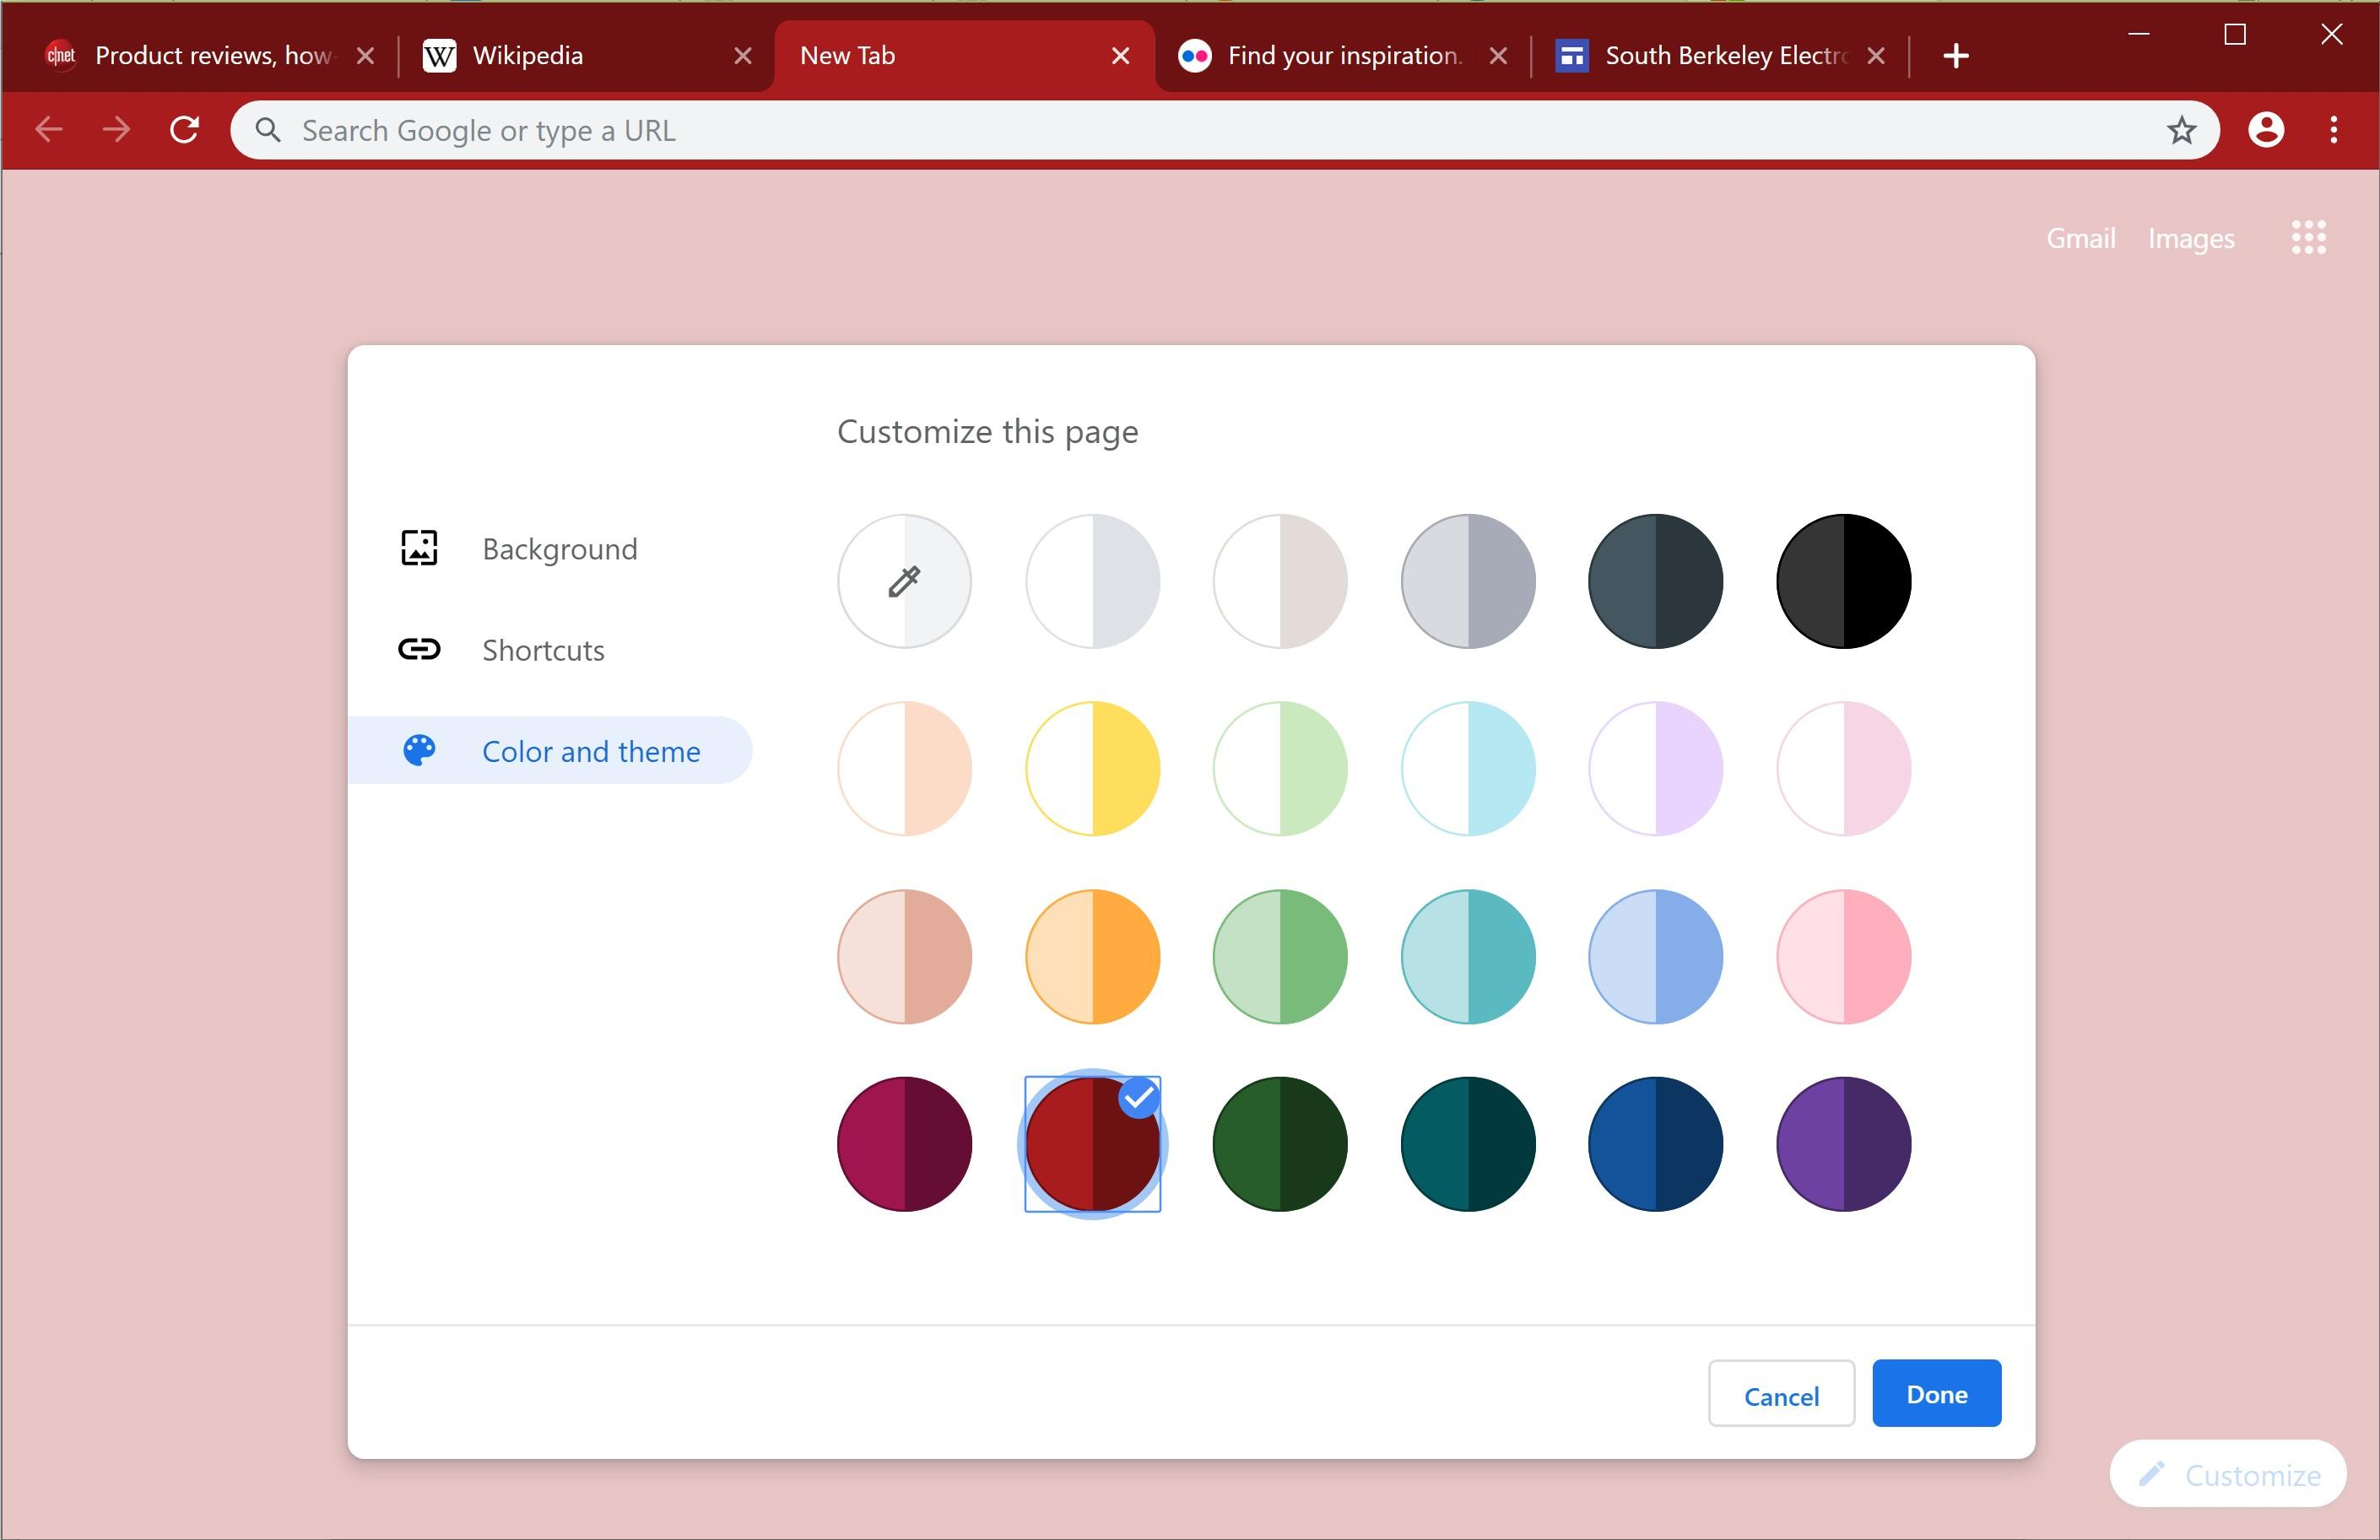 Google lets you pick a Chrome color scheme from the new tab page.